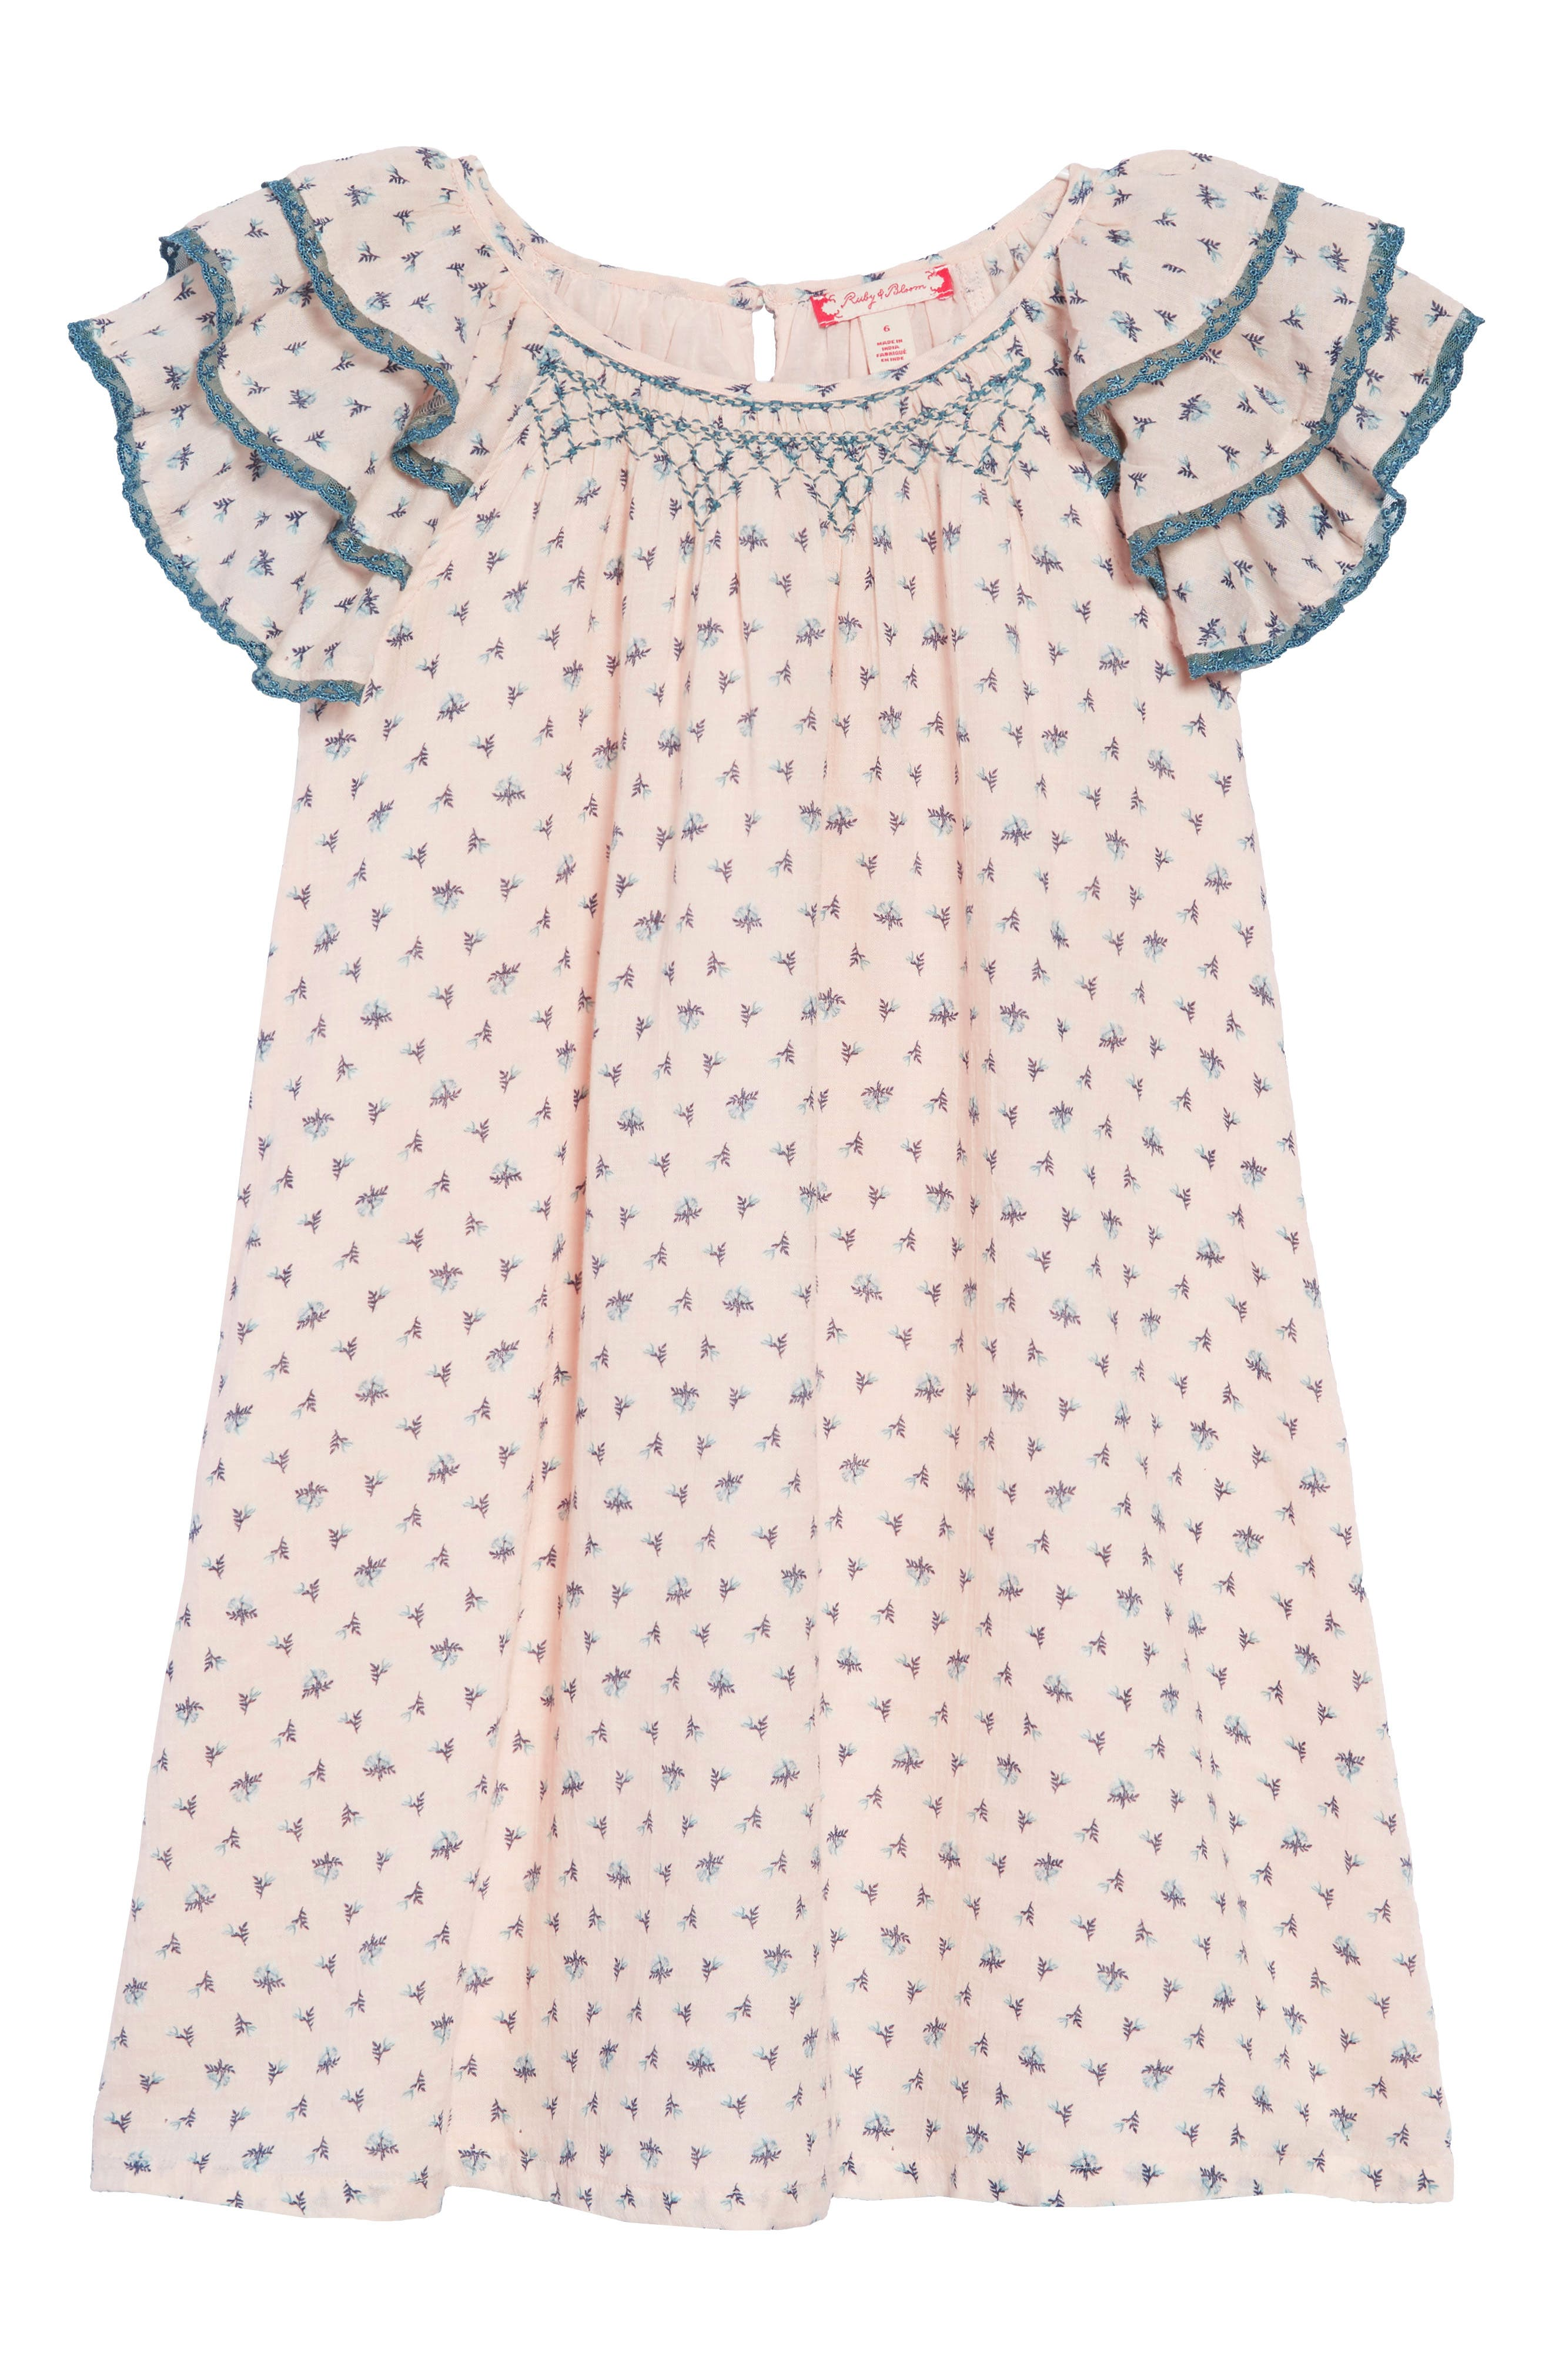 Tiered Sleeve Dress,                             Main thumbnail 1, color,                             PINK CHINTZ PRIM FLORAL